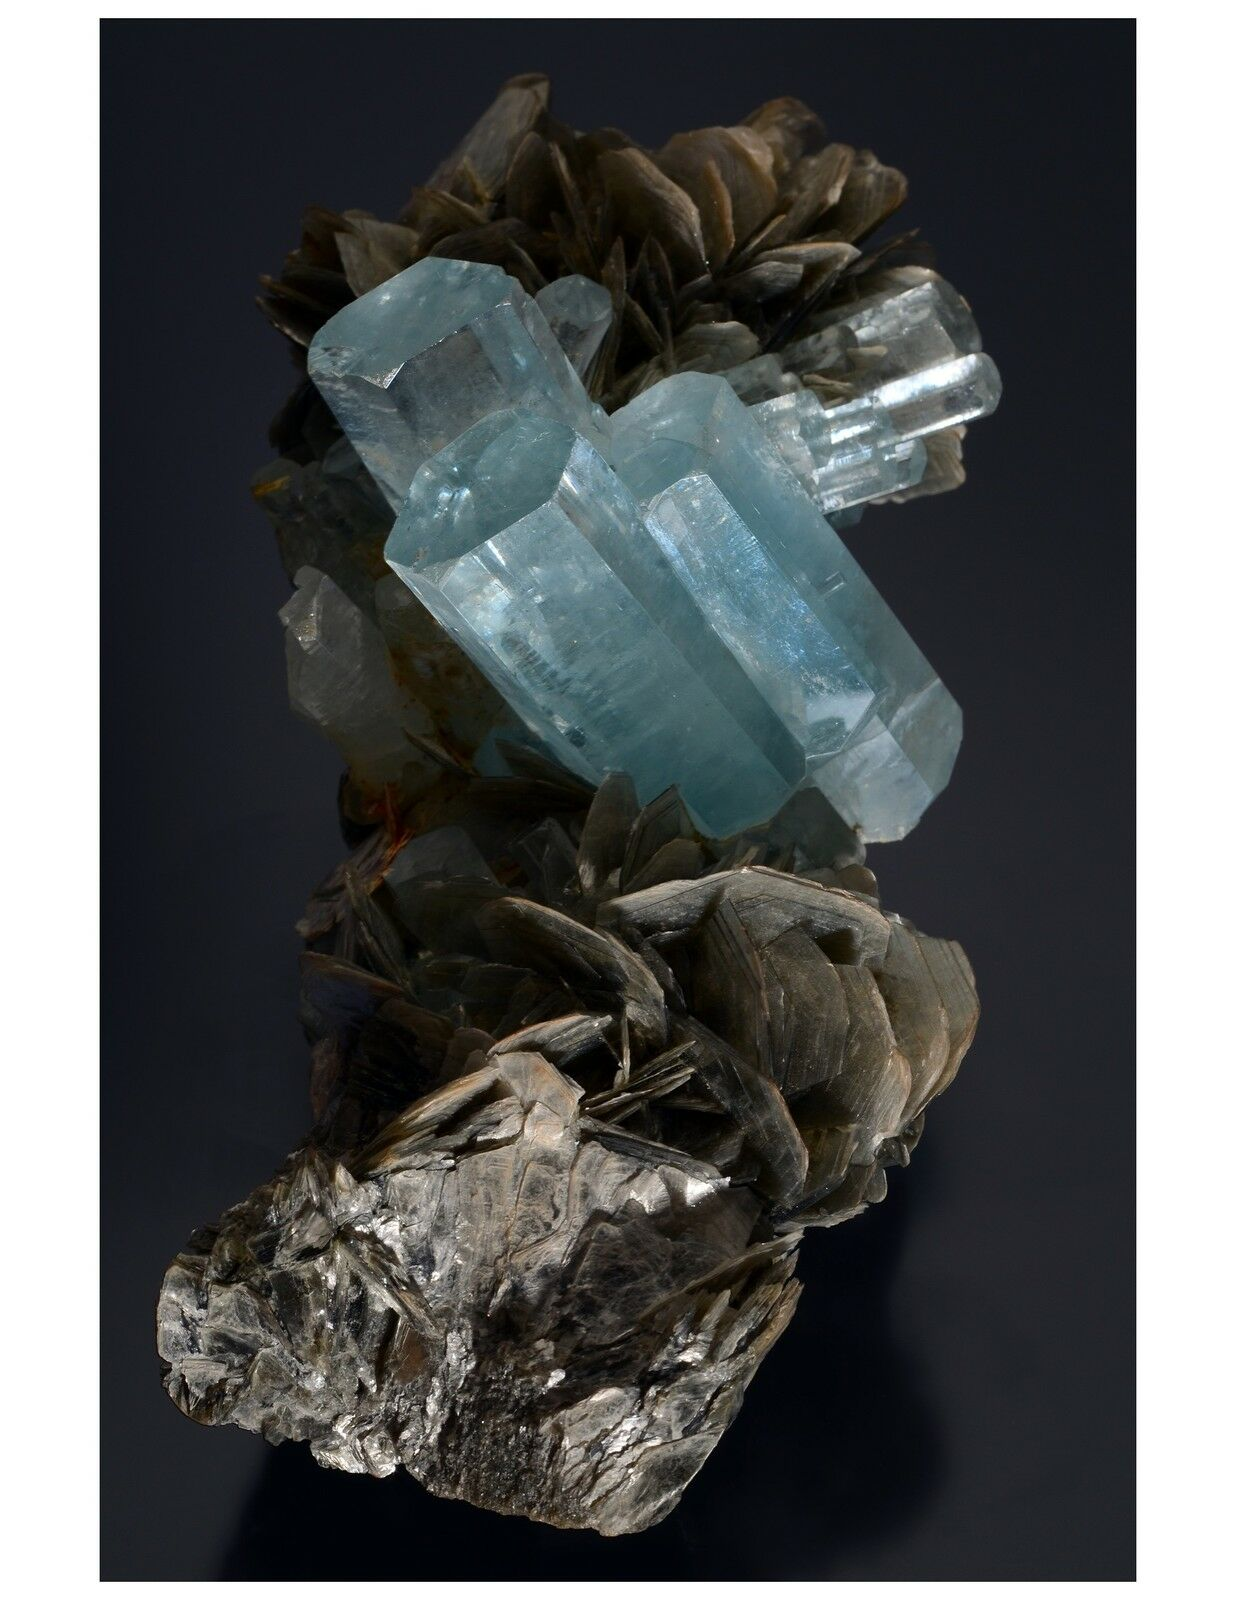 Multi-Faceted Minerals